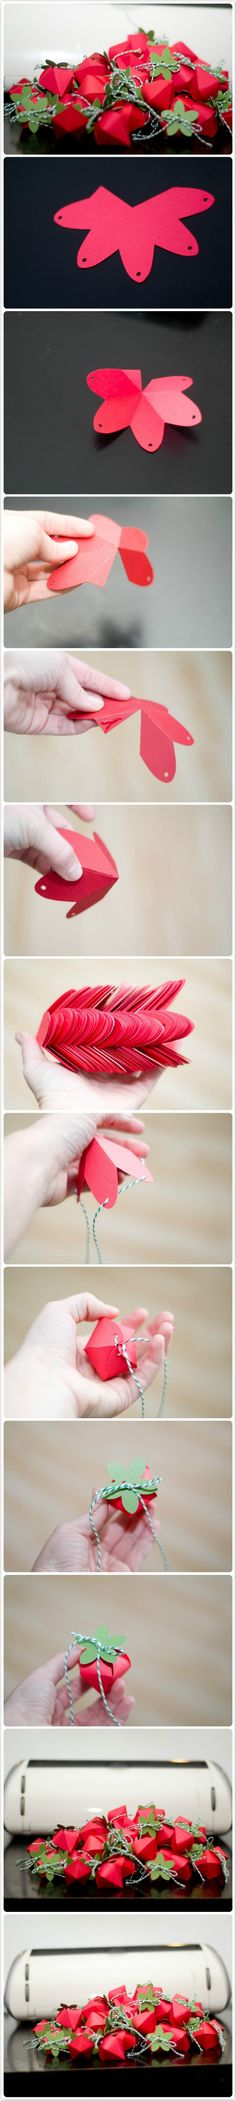 DIY frutillas de papel